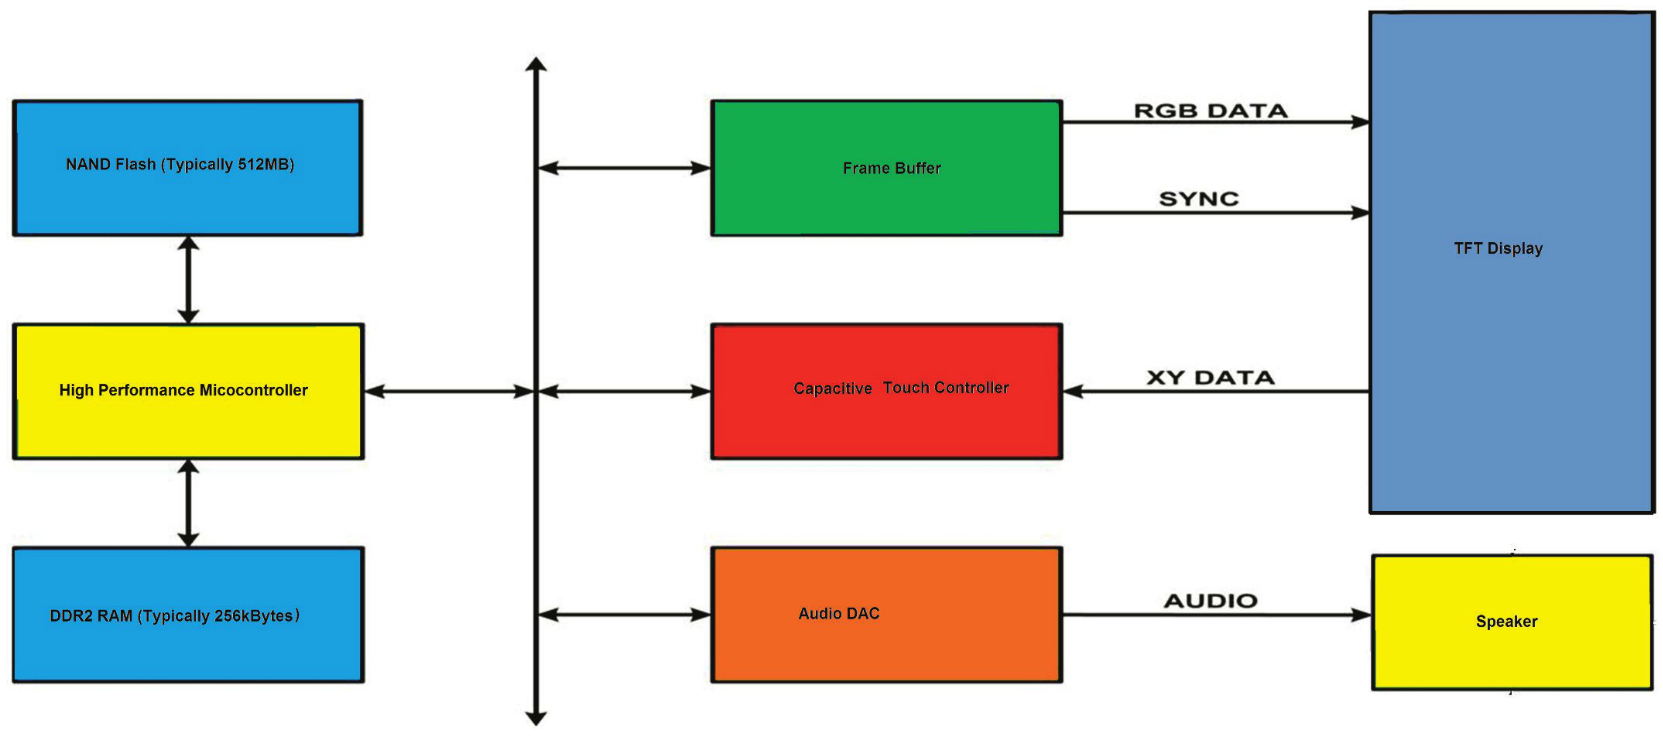 Figure 1: Schematic of an MP3 player system based on a FT900 microcontroller and an FT800 graphic controller